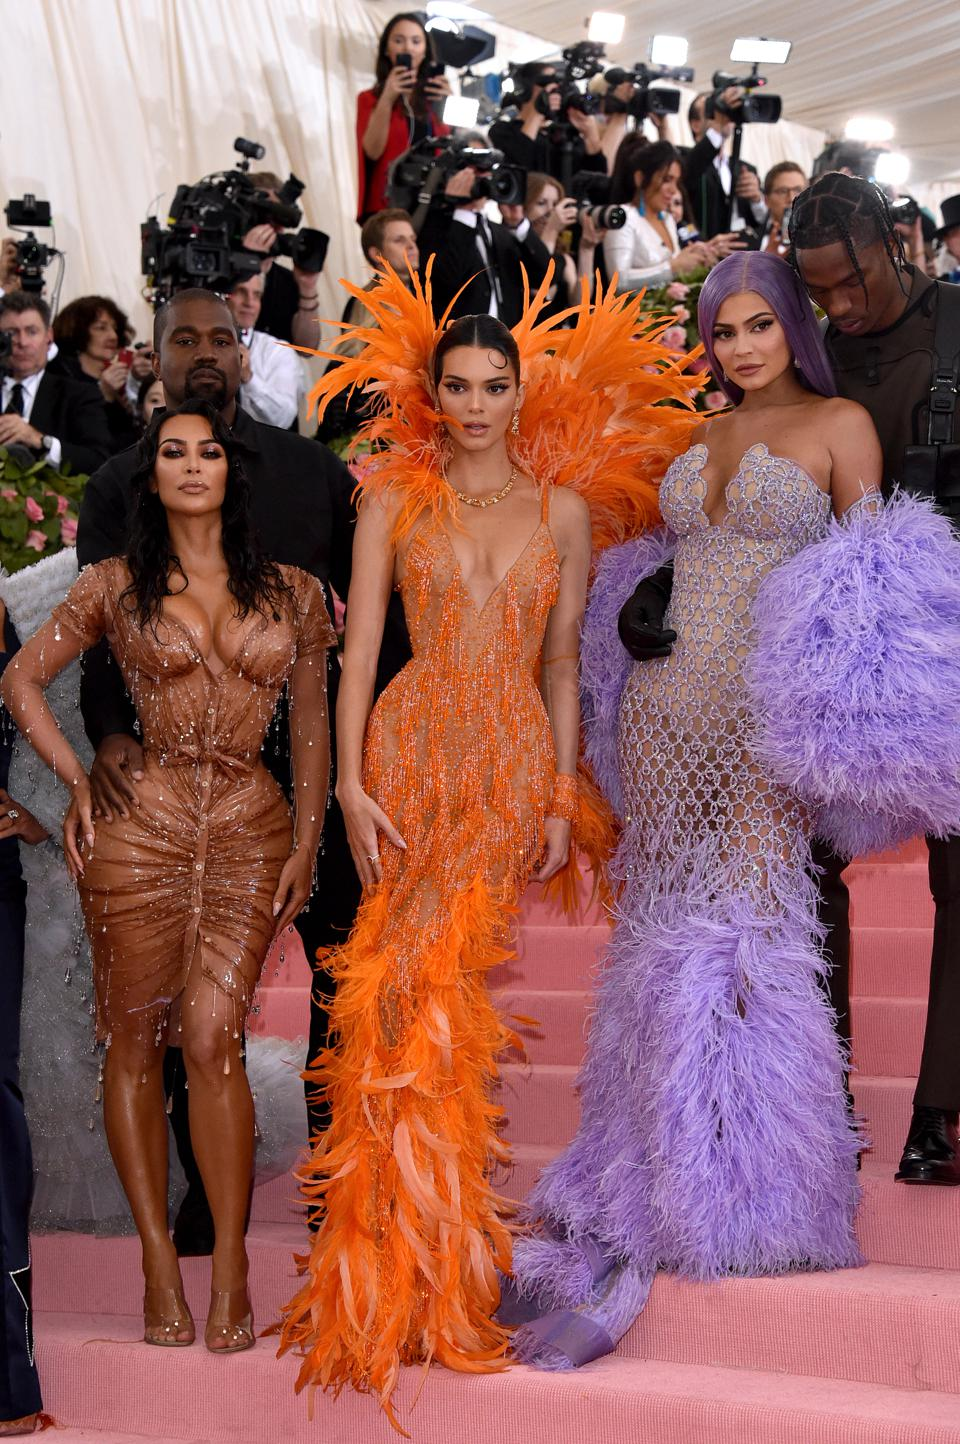 By our precursory count, Kim Kardashian West, Kanye West, and Kendall and Kylie Jenner applied for 716 trademarks between them.